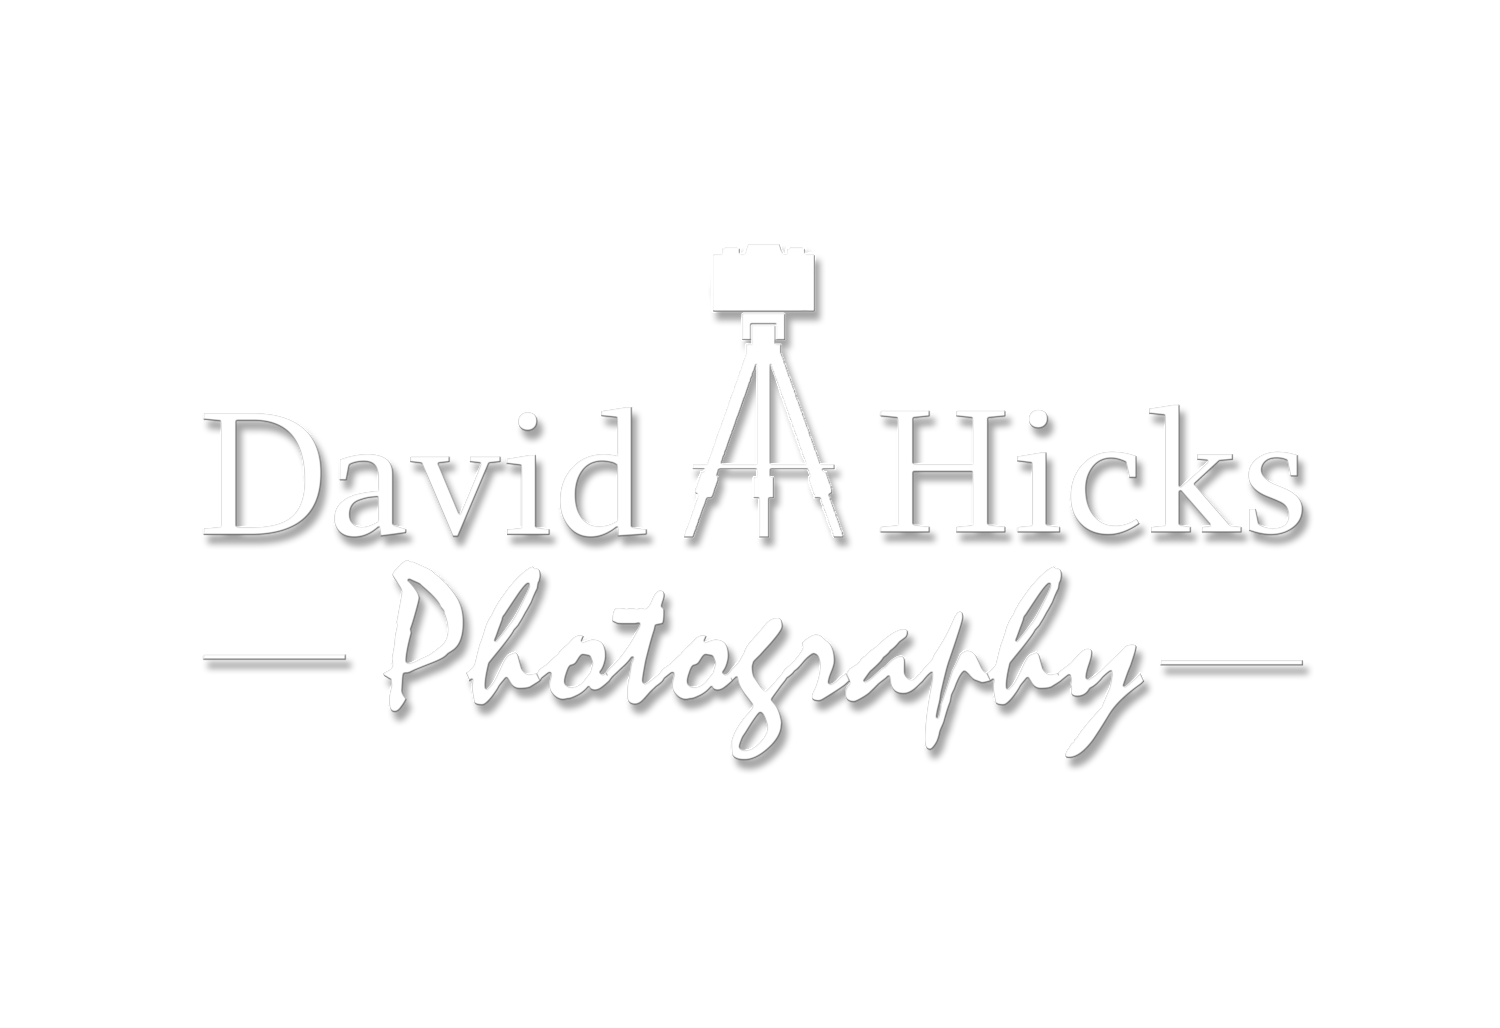 David A Hicks Commercial Photography